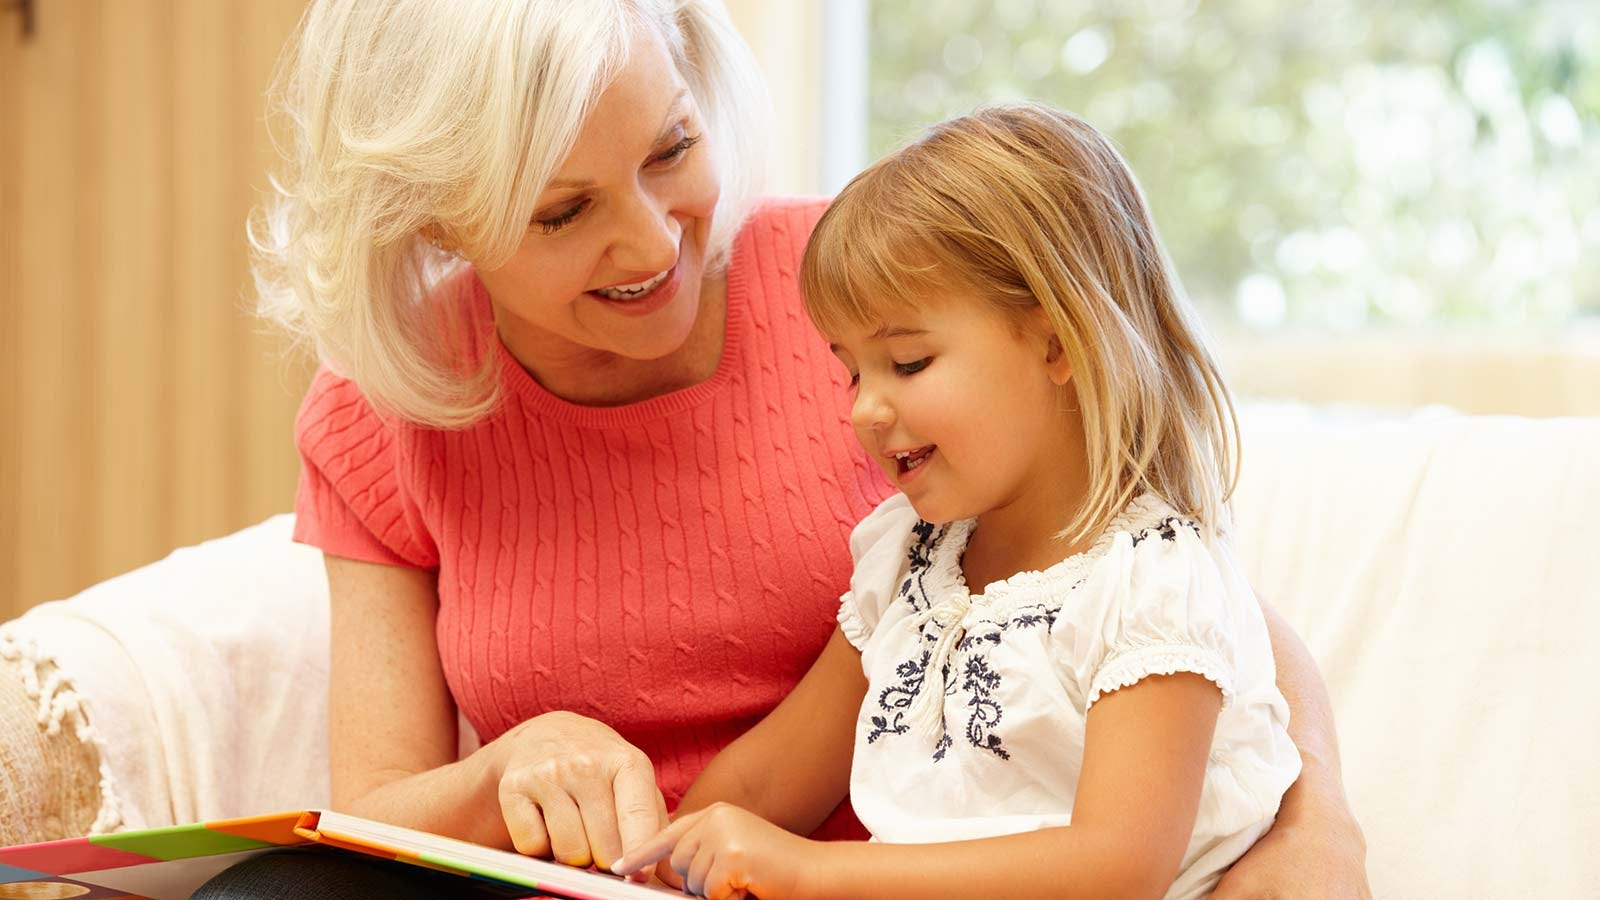 A grandmother reading a book to her granddaughter.